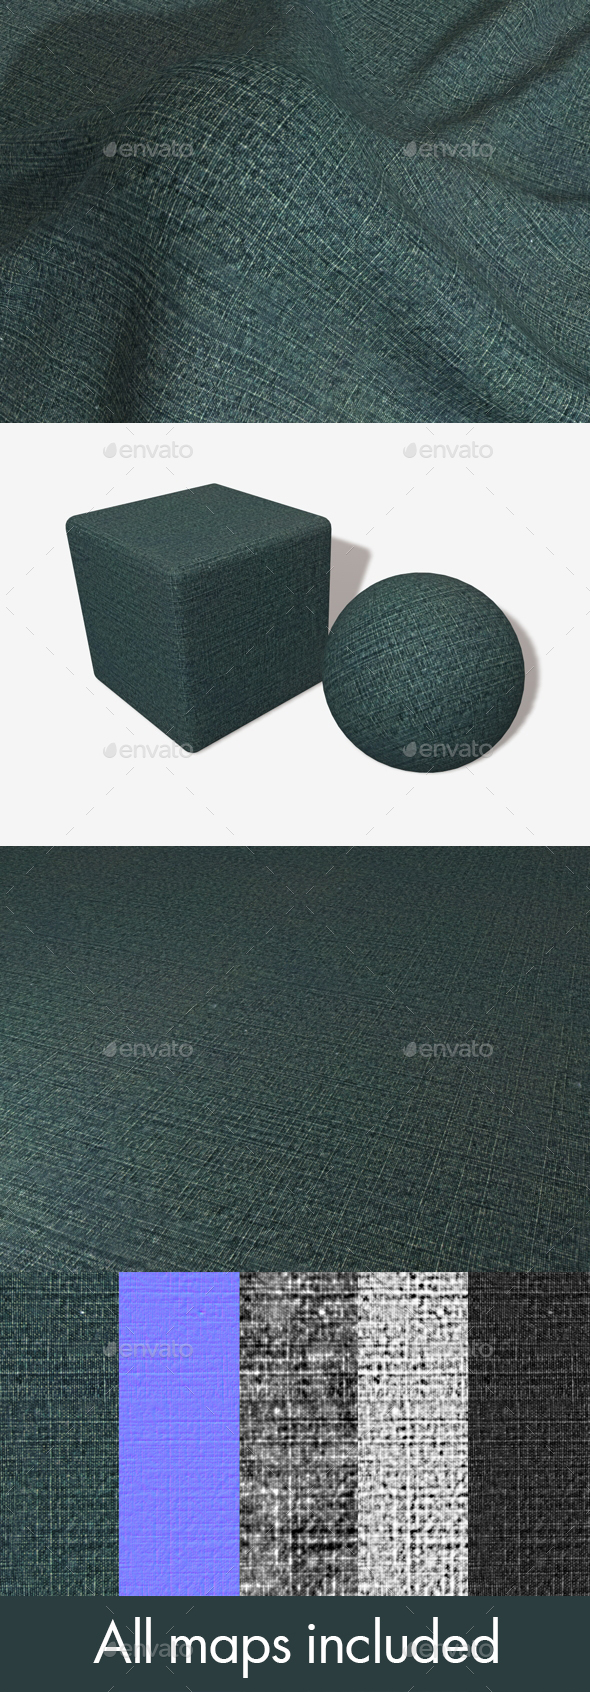 3DOcean Denim Hatch Seamless Texture 19751053